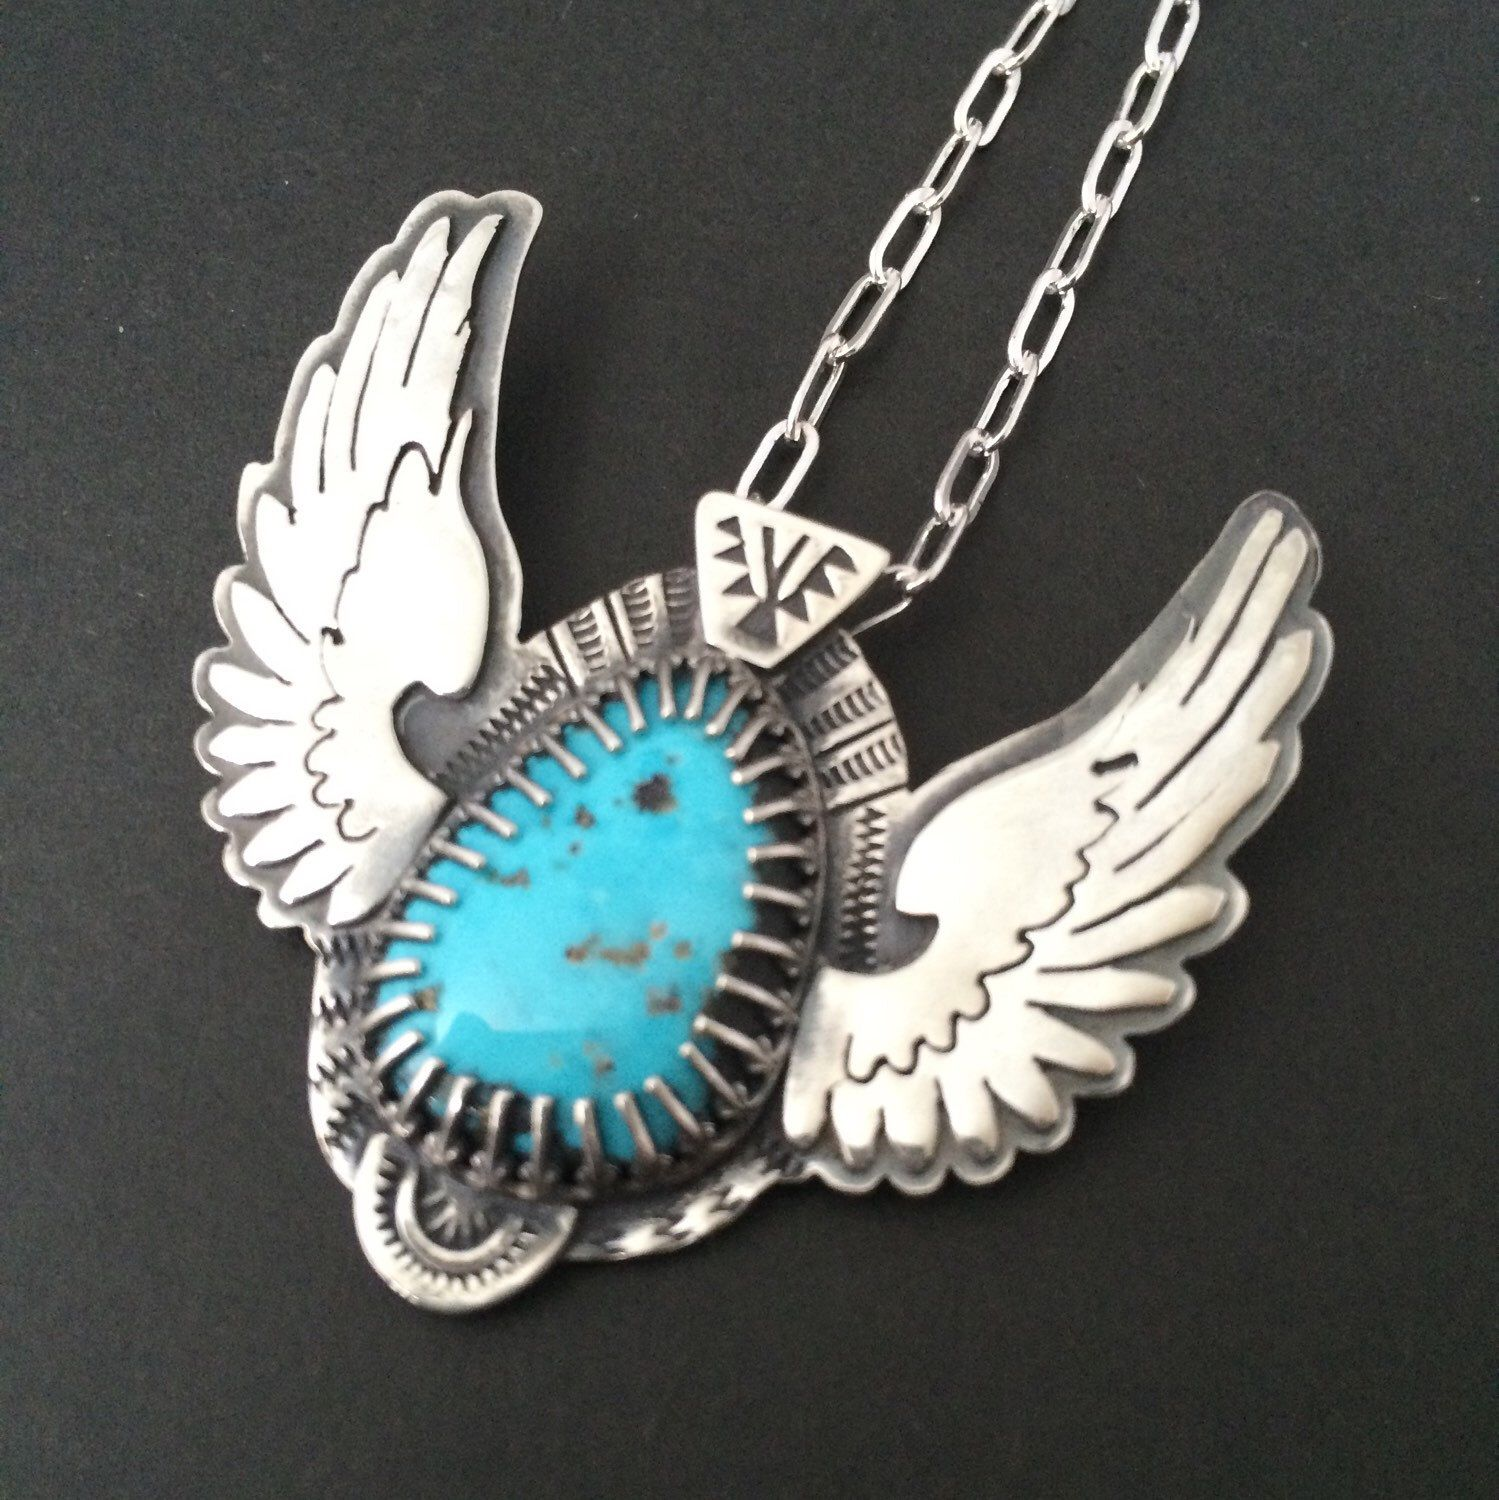 Turquoise wing statement necklace - tribal necklace - unique necklace - totem necklace - talisman   by prox on Etsy https://www.etsy.com/listing/227601854/turquoise-wing-statement-necklace-tribal